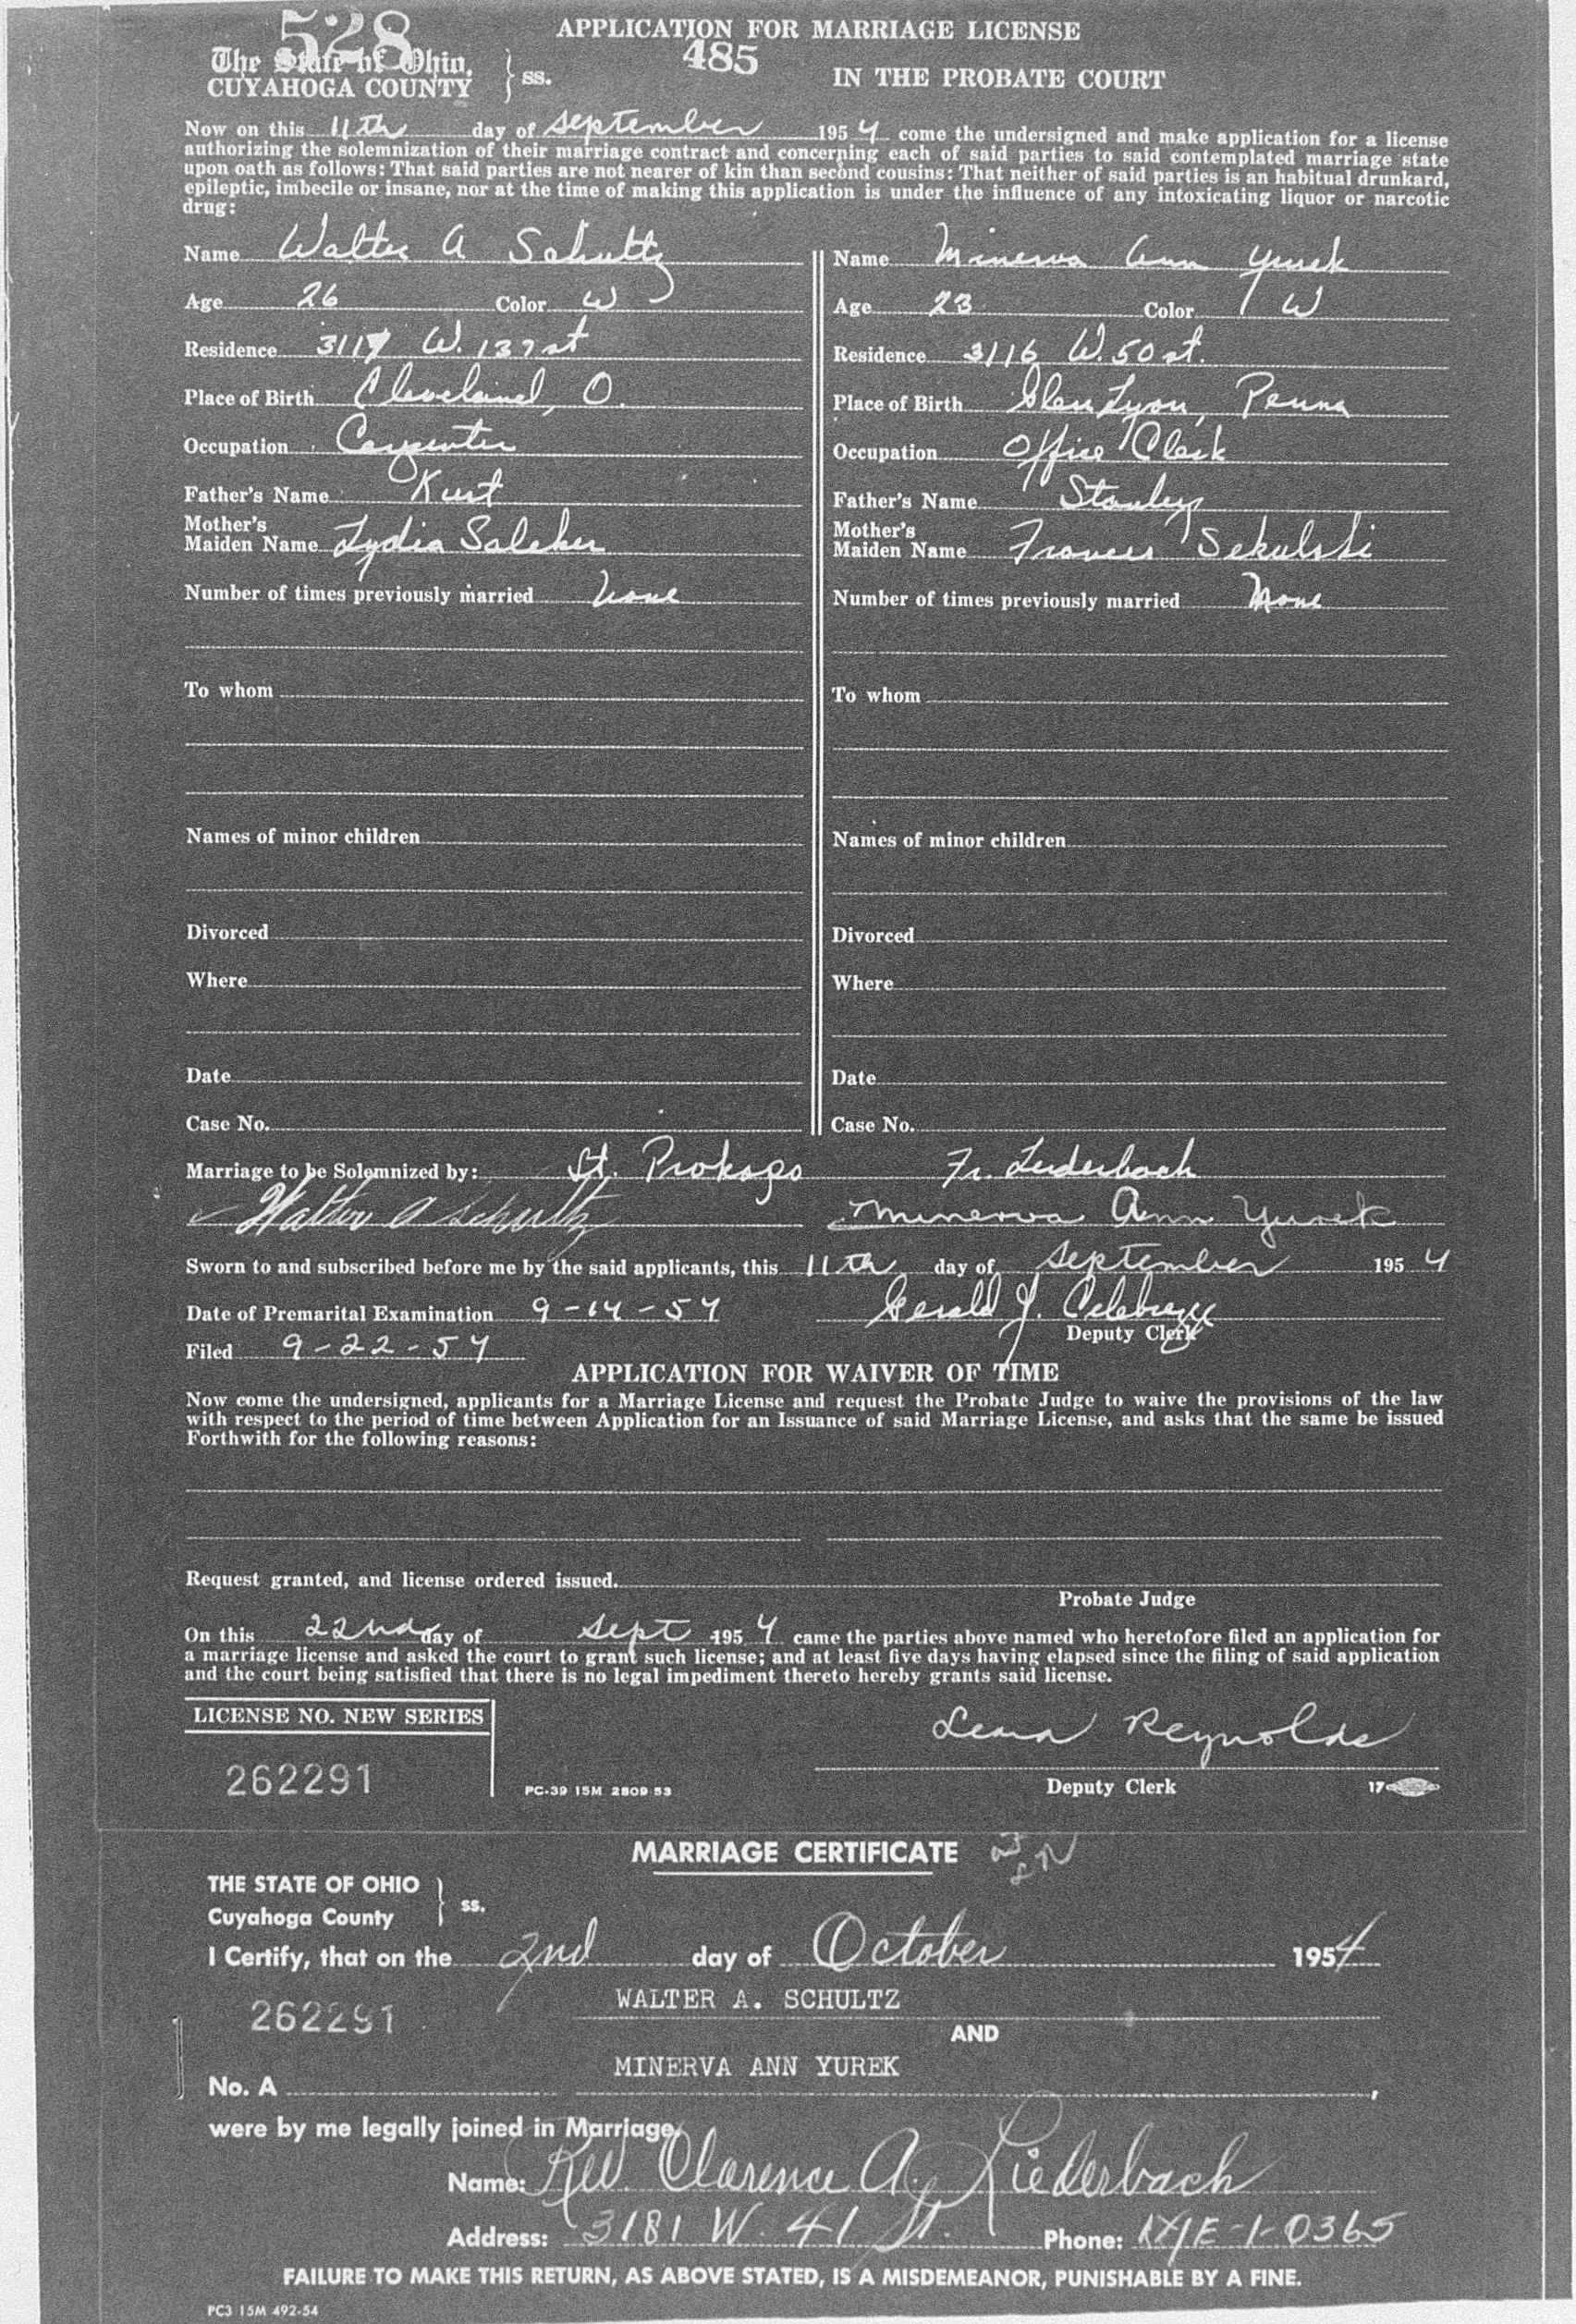 Cuyahoga County Archive; Cleveland, Ohio; Cuyahoga County, Ohio, Marriage Records, 1810-1973 ; Volume: 485 ; Page: 528 ; Year Range: 1954-1956